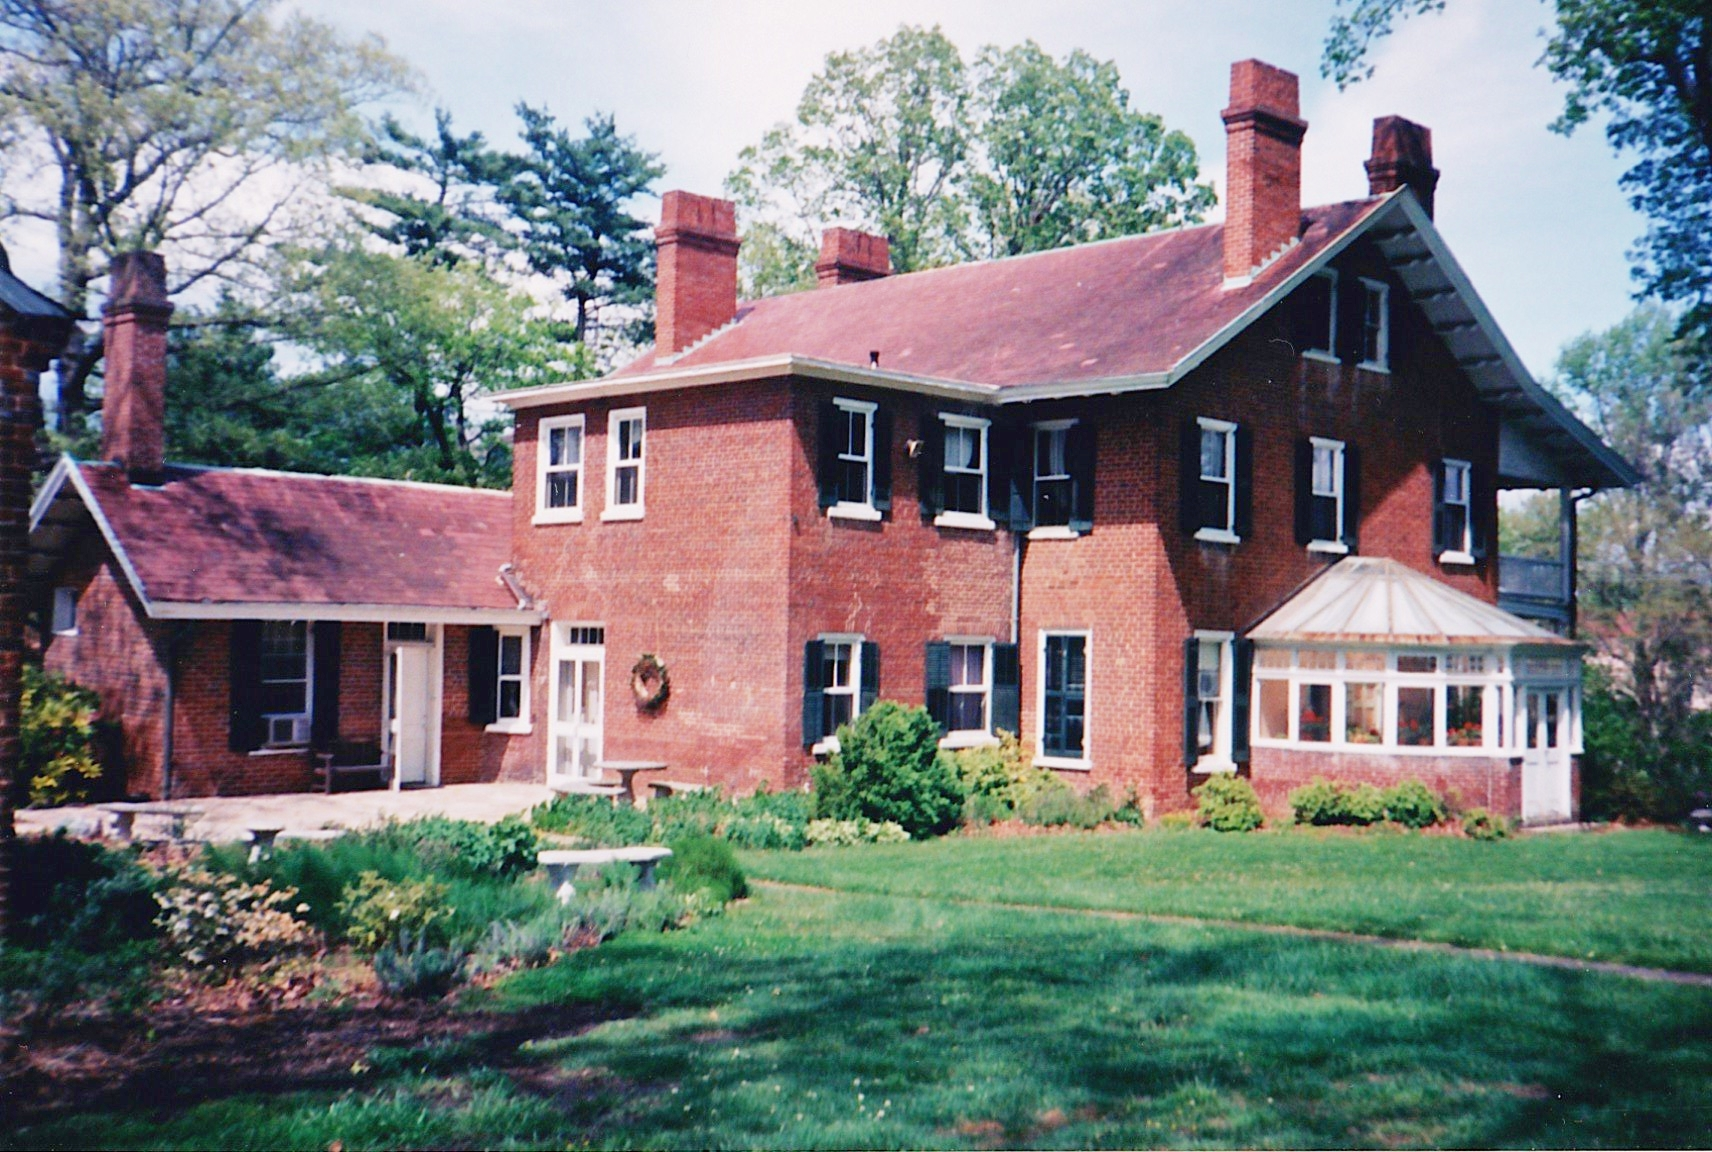 Side view of the Smith-McDowell House Museum